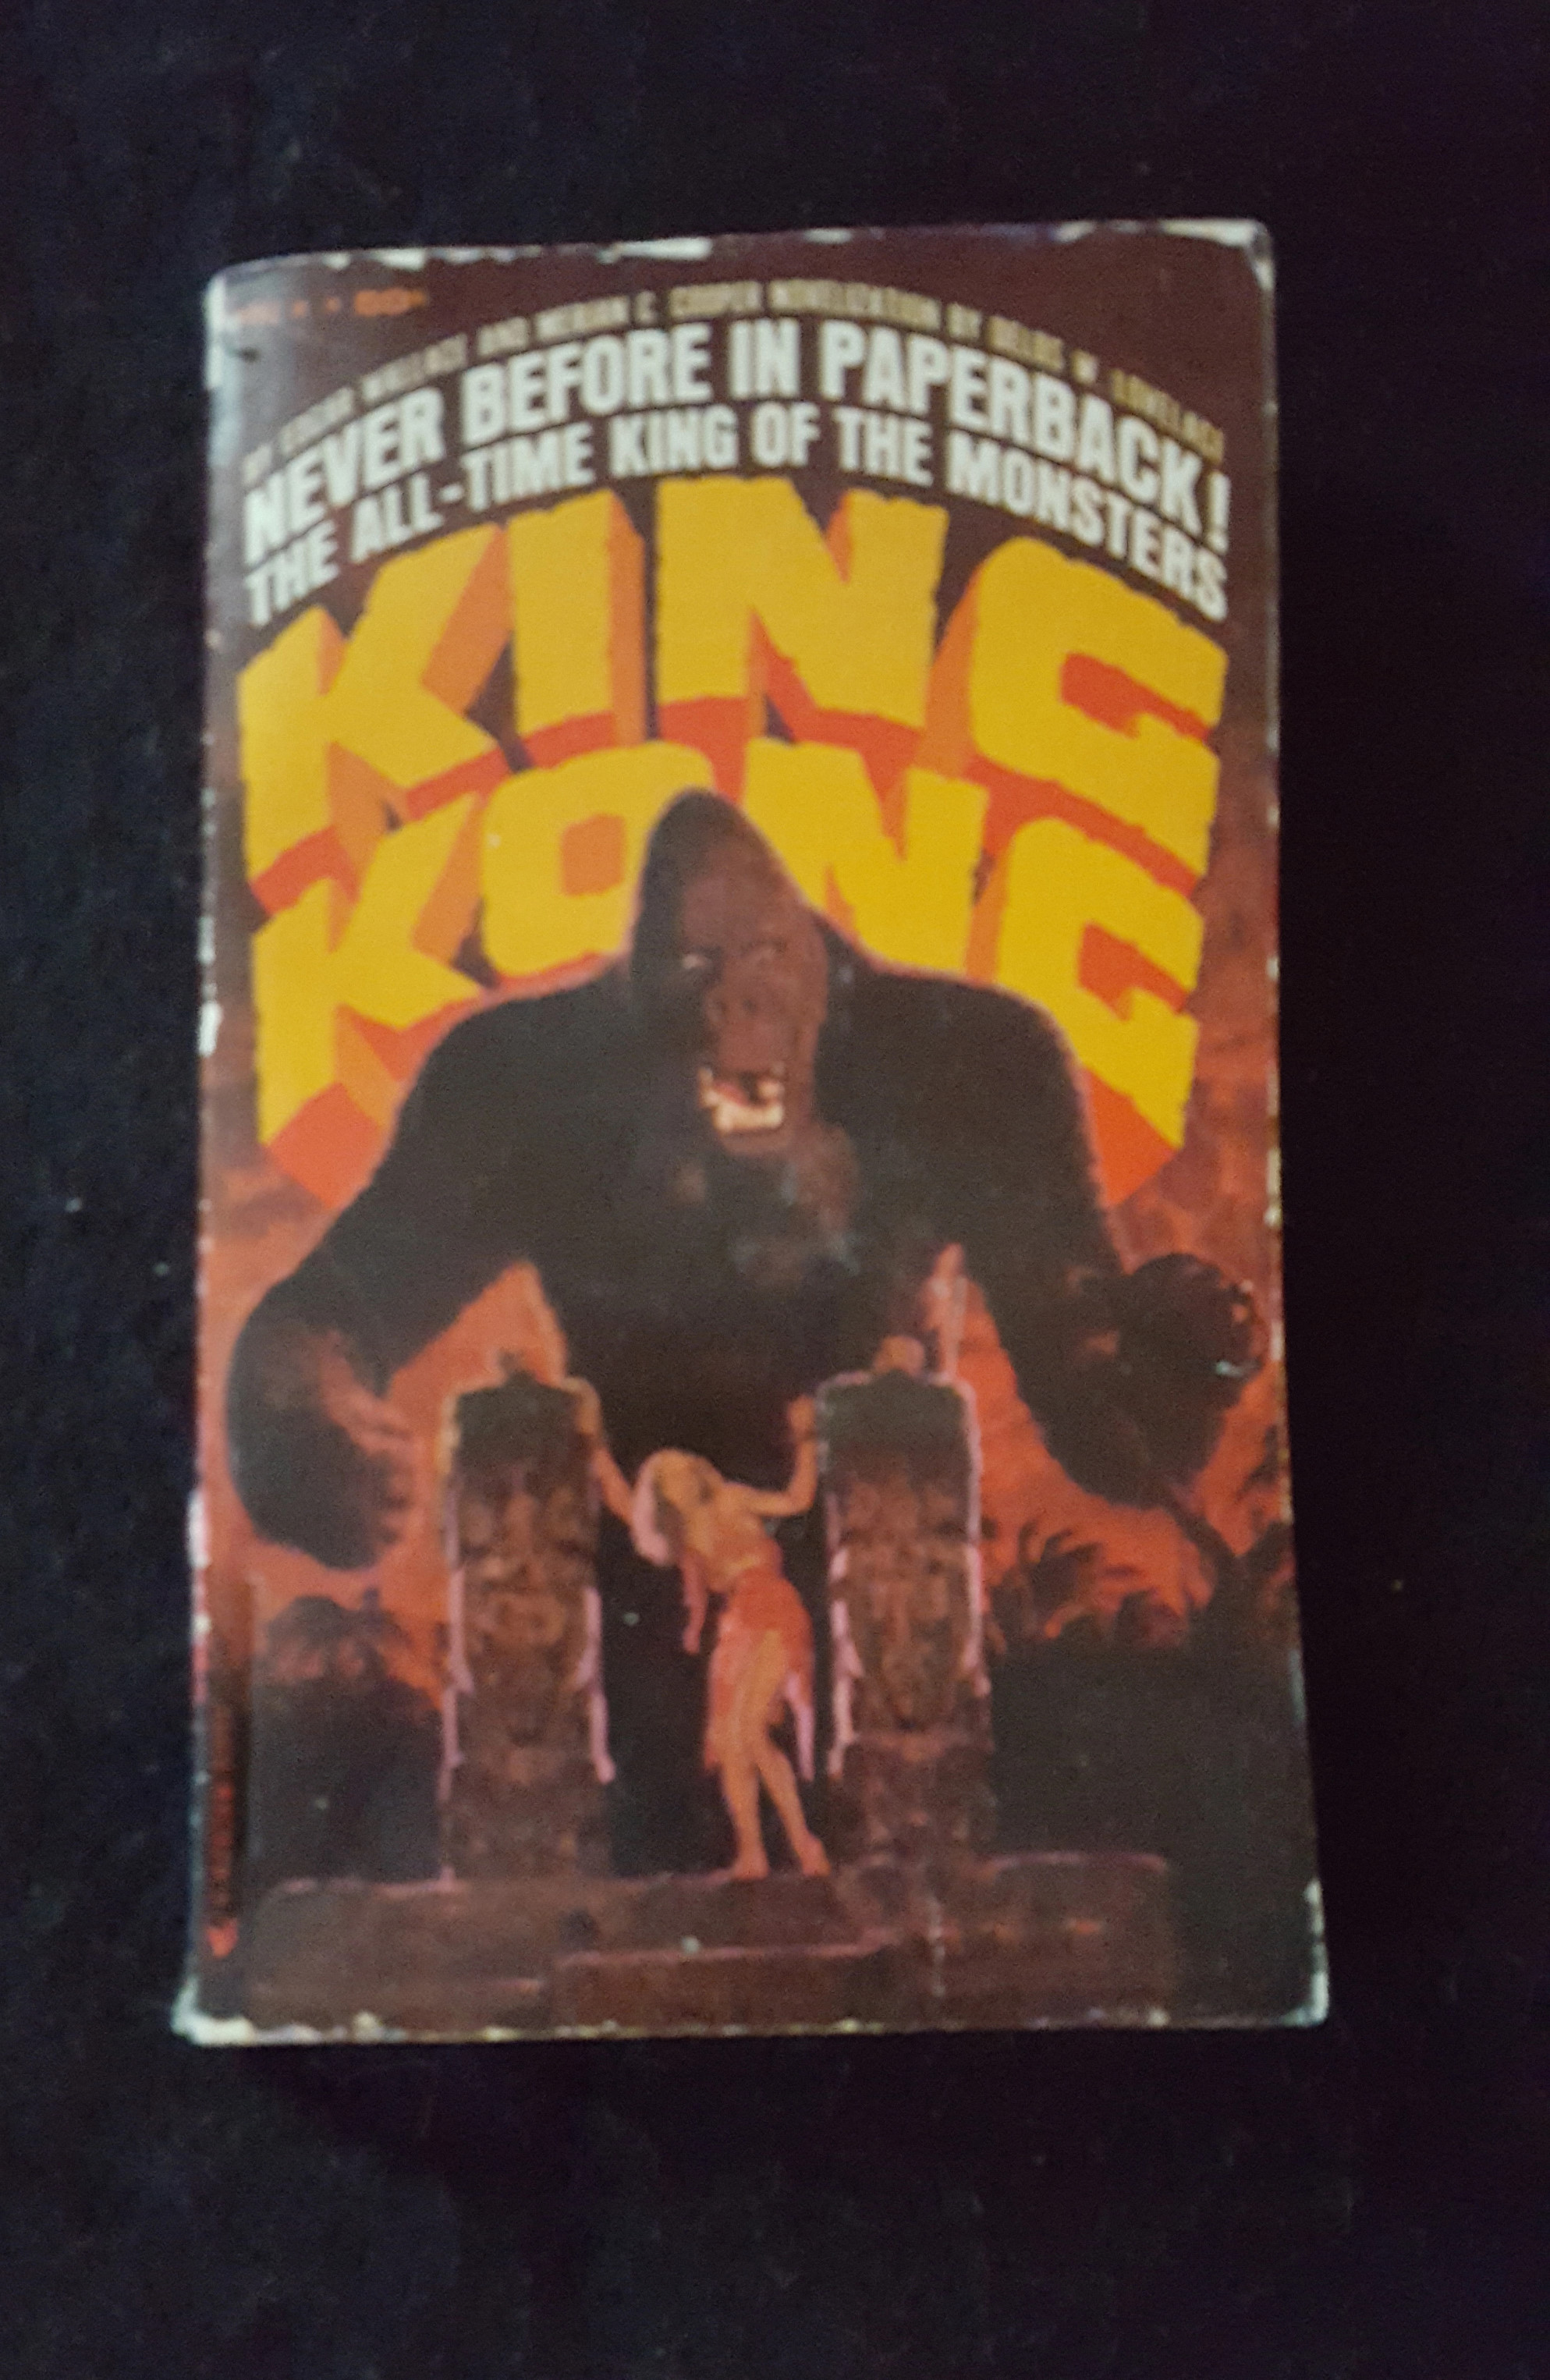 1965 Vintage First Printing KING KONG Paperback Pocket Book (Personal collection of Ray Ferry)